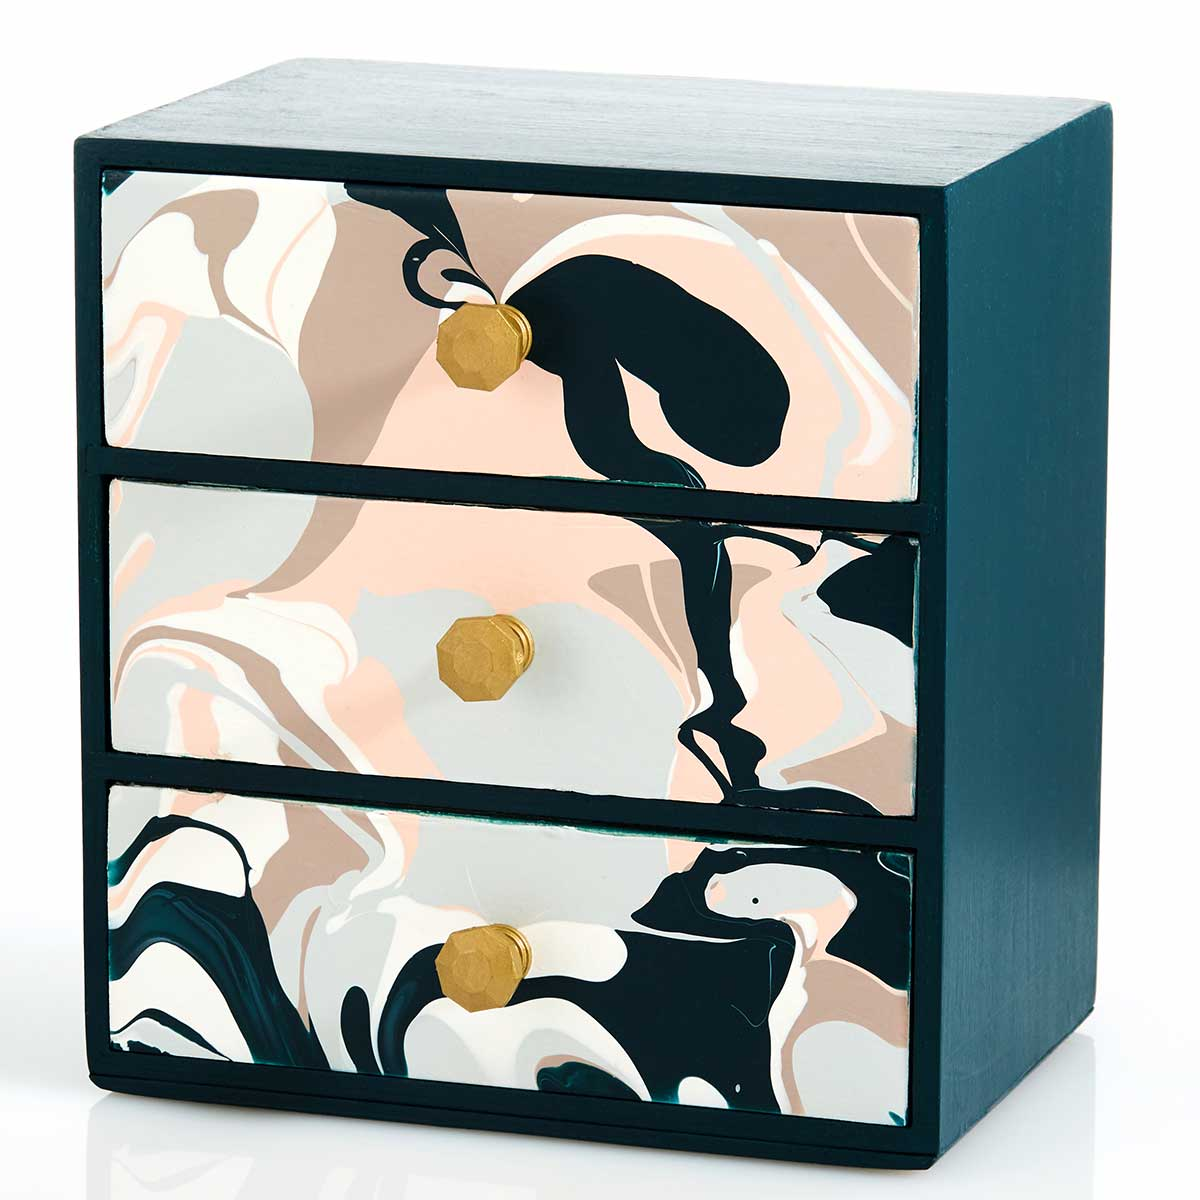 DIY Poured Abstract Art Chest of Drawers